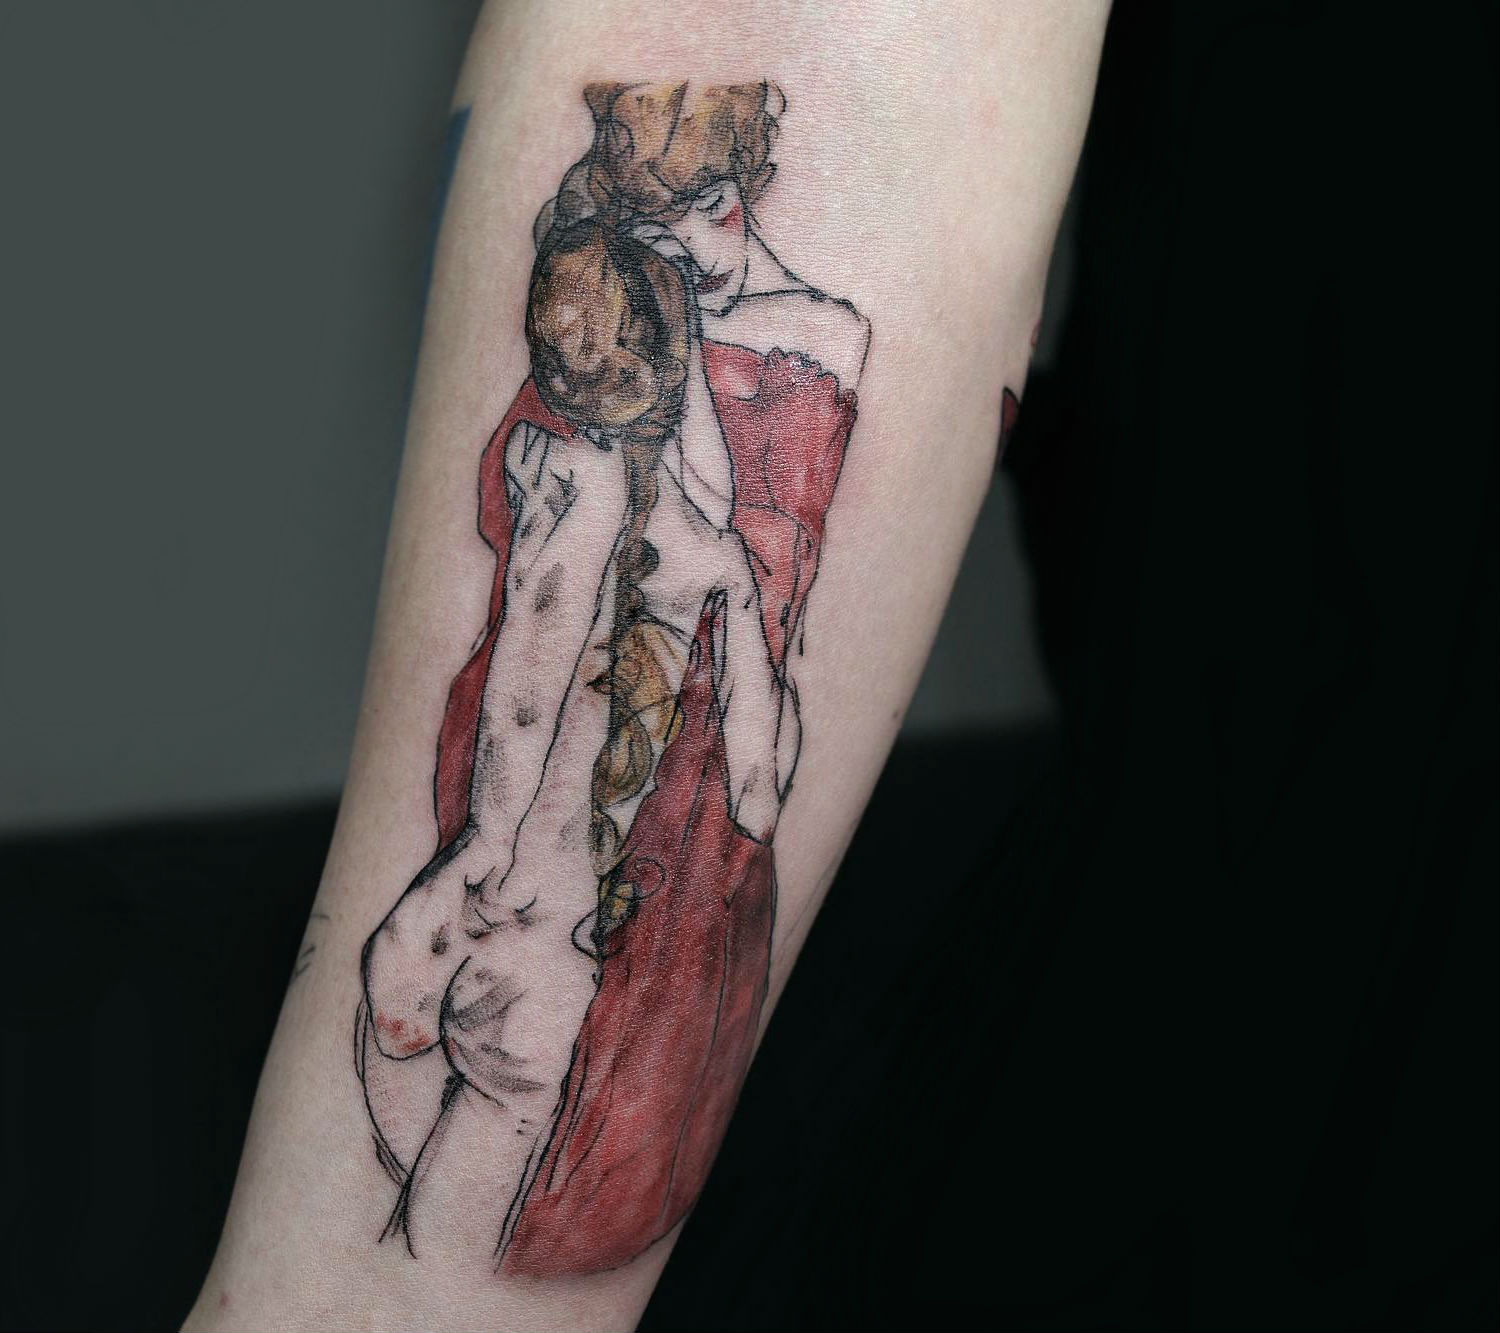 Eheon Egon Schiele tattoo